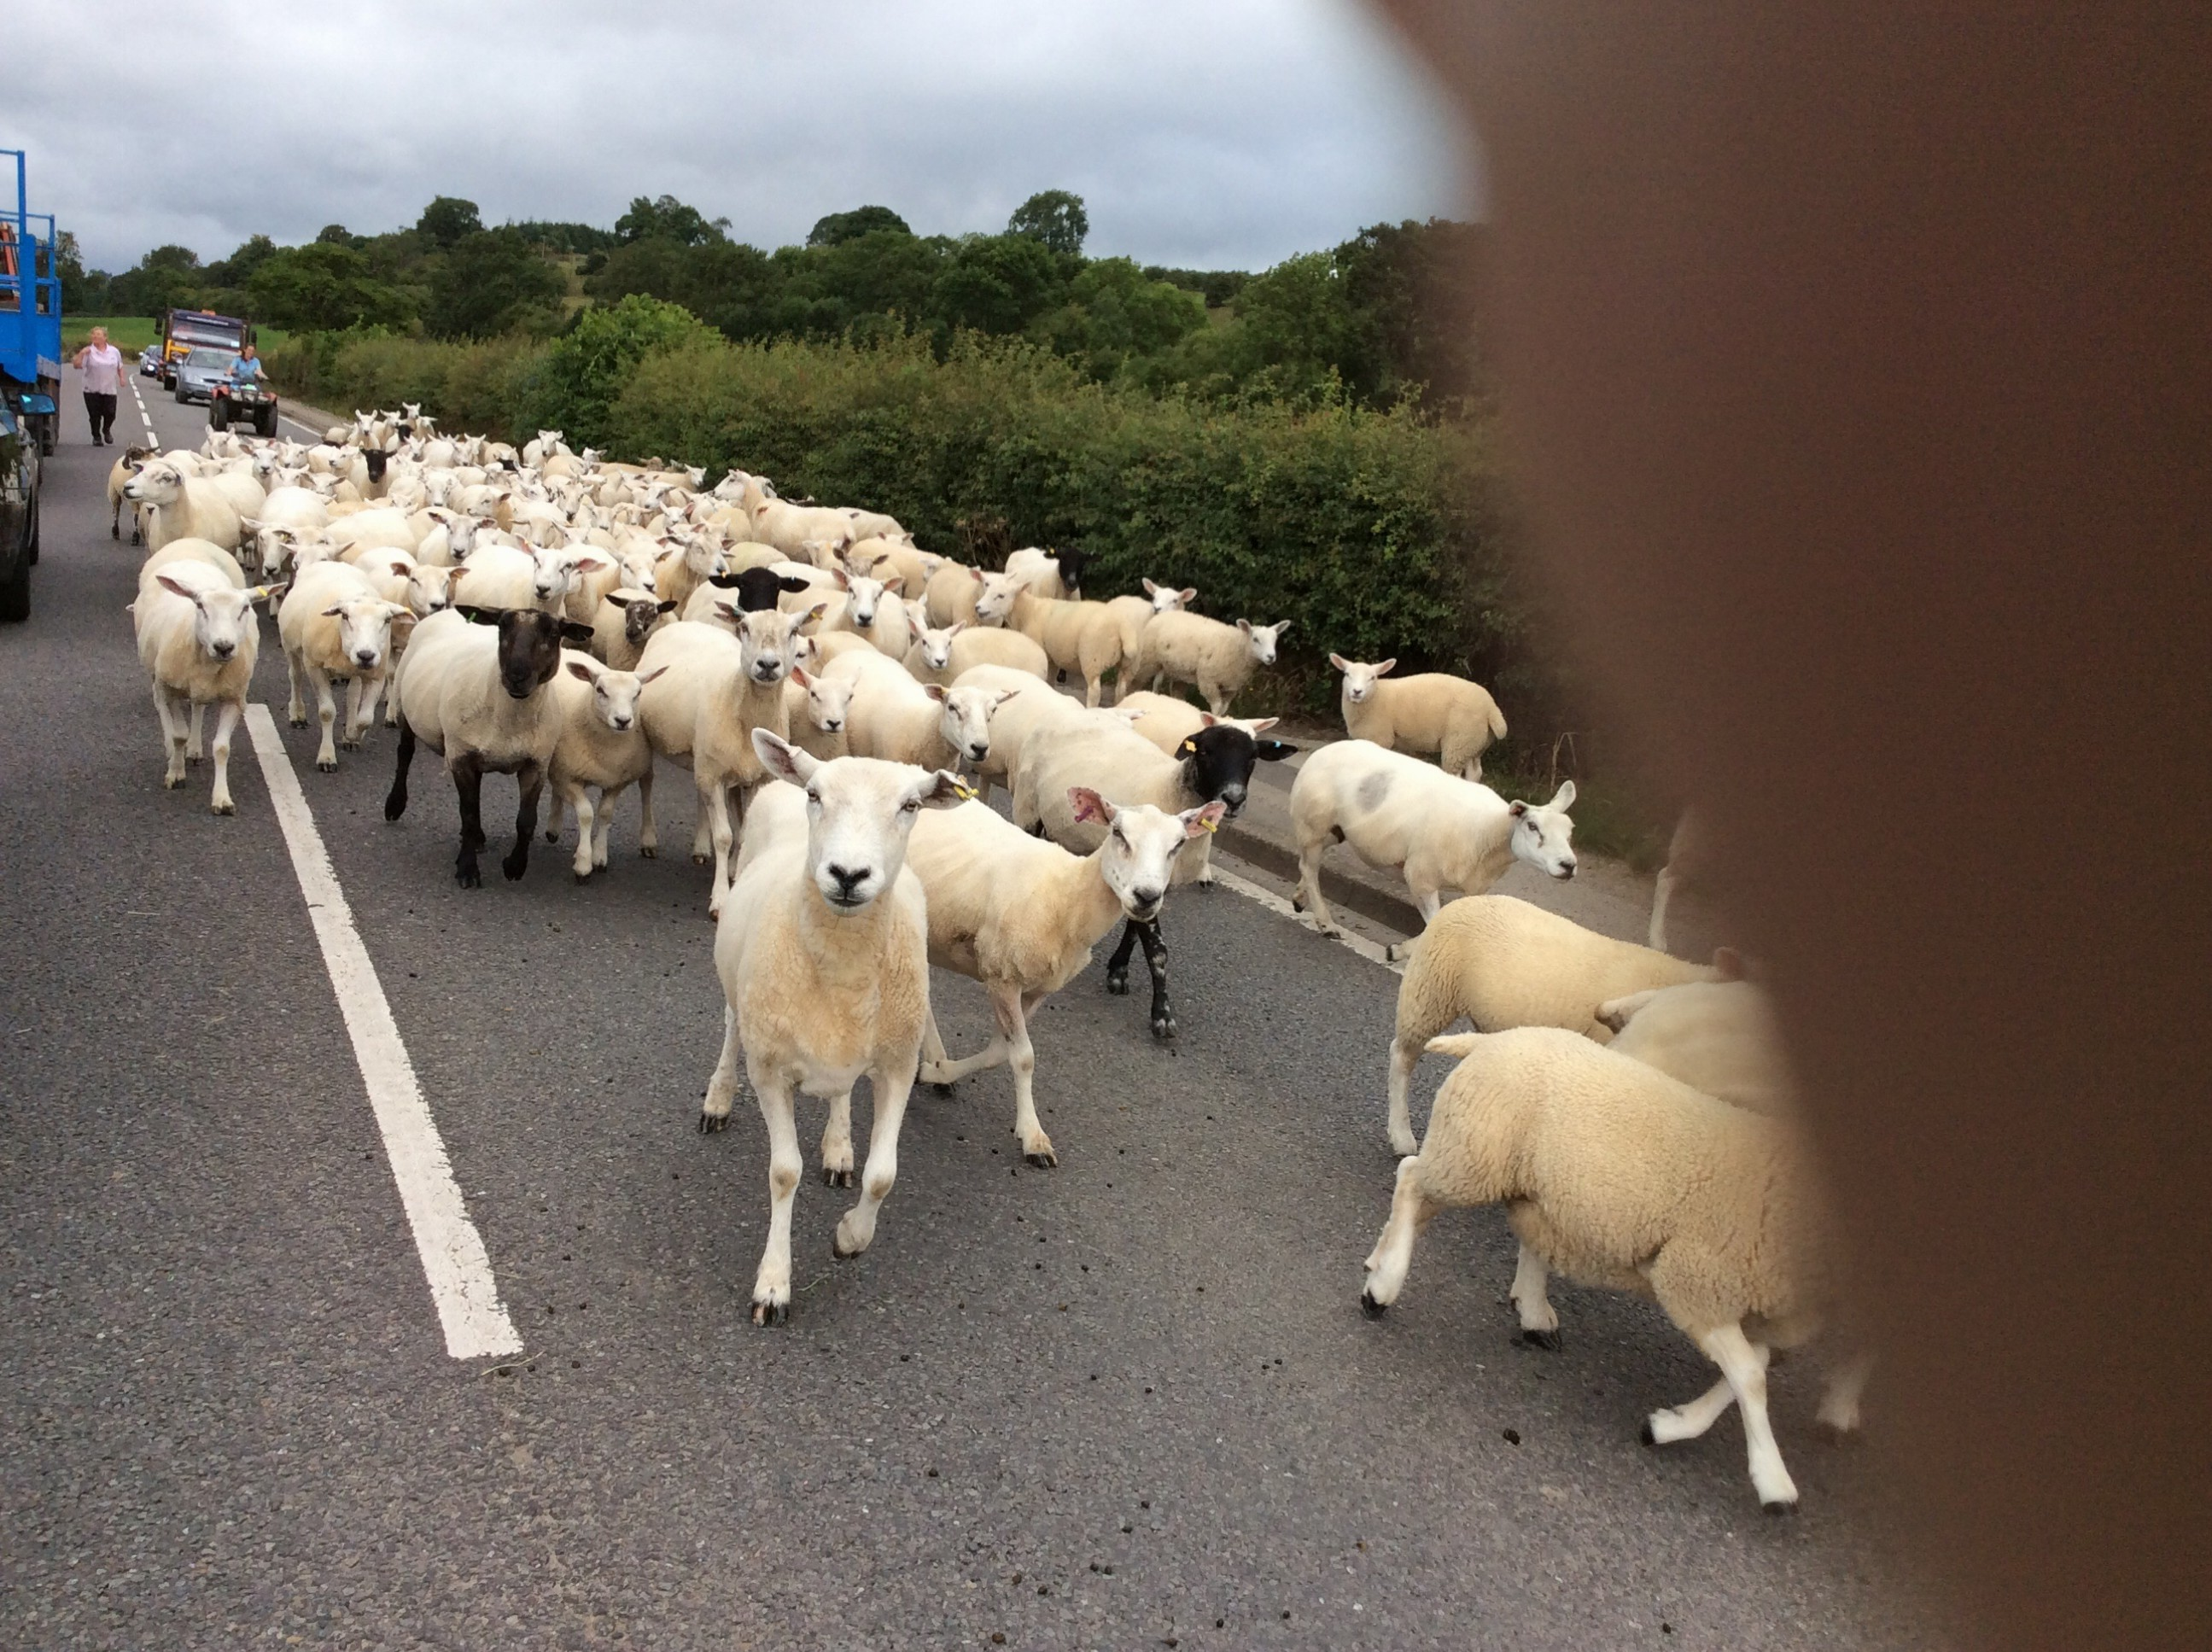 Here's looking at you kid! Sheep take over the road. Sorry about my thumb in the picture!@